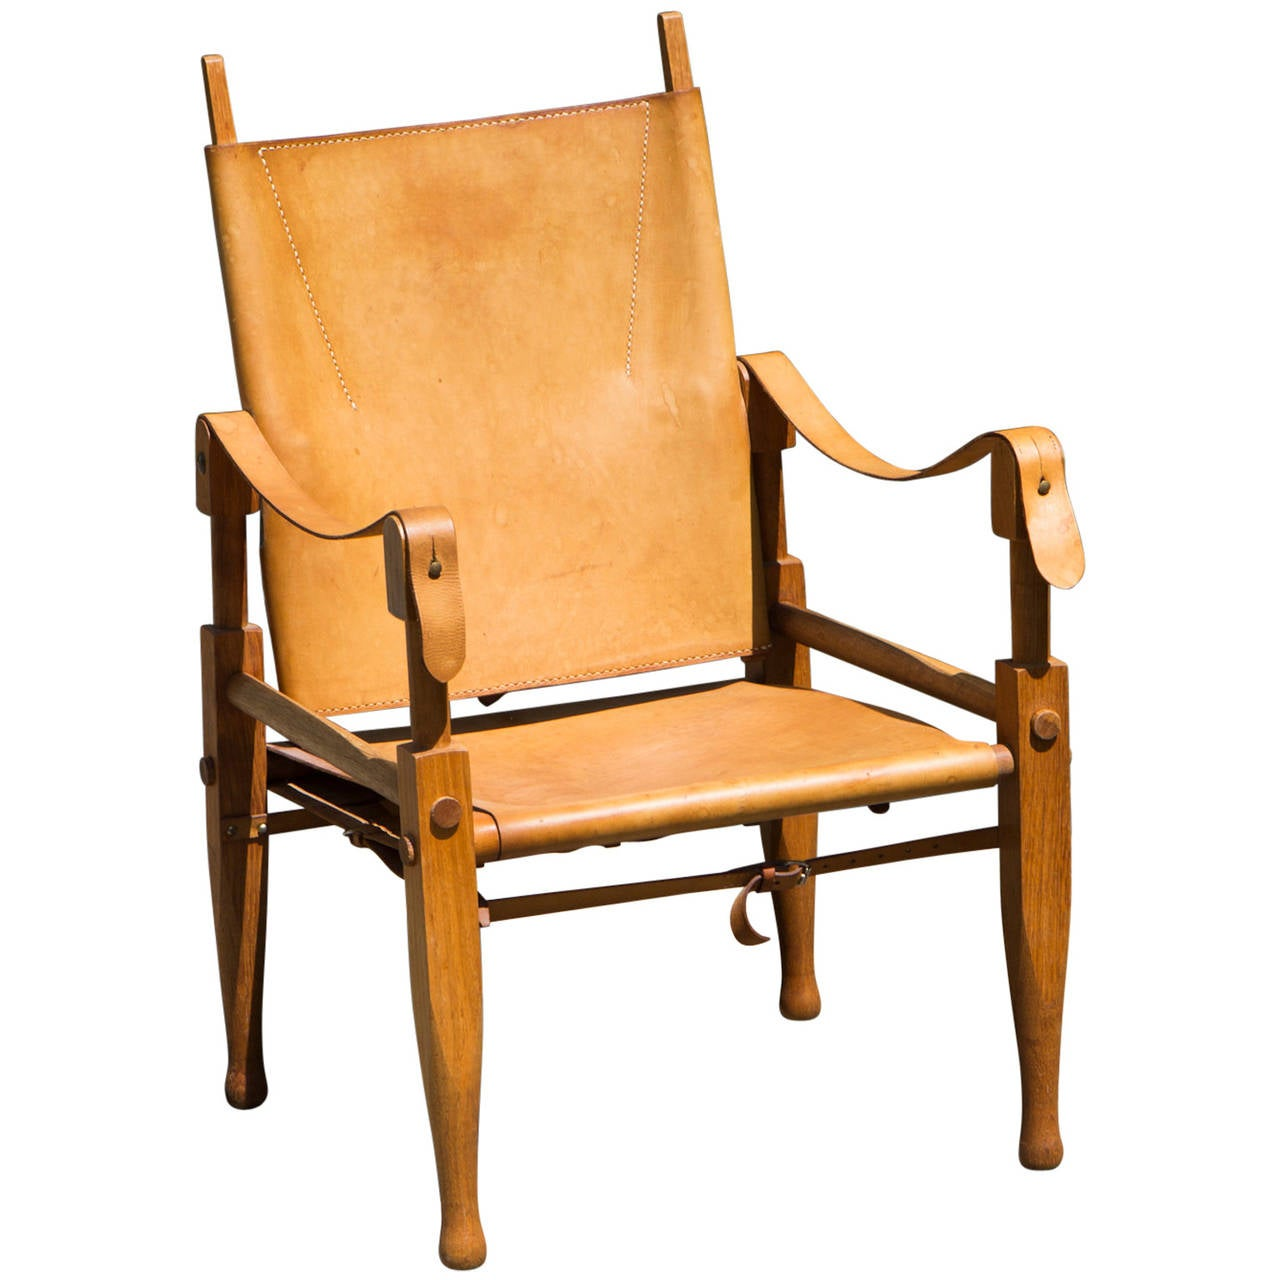 Safari Chair Safari Chair By Wilhelm Kienzle At 1stdibs